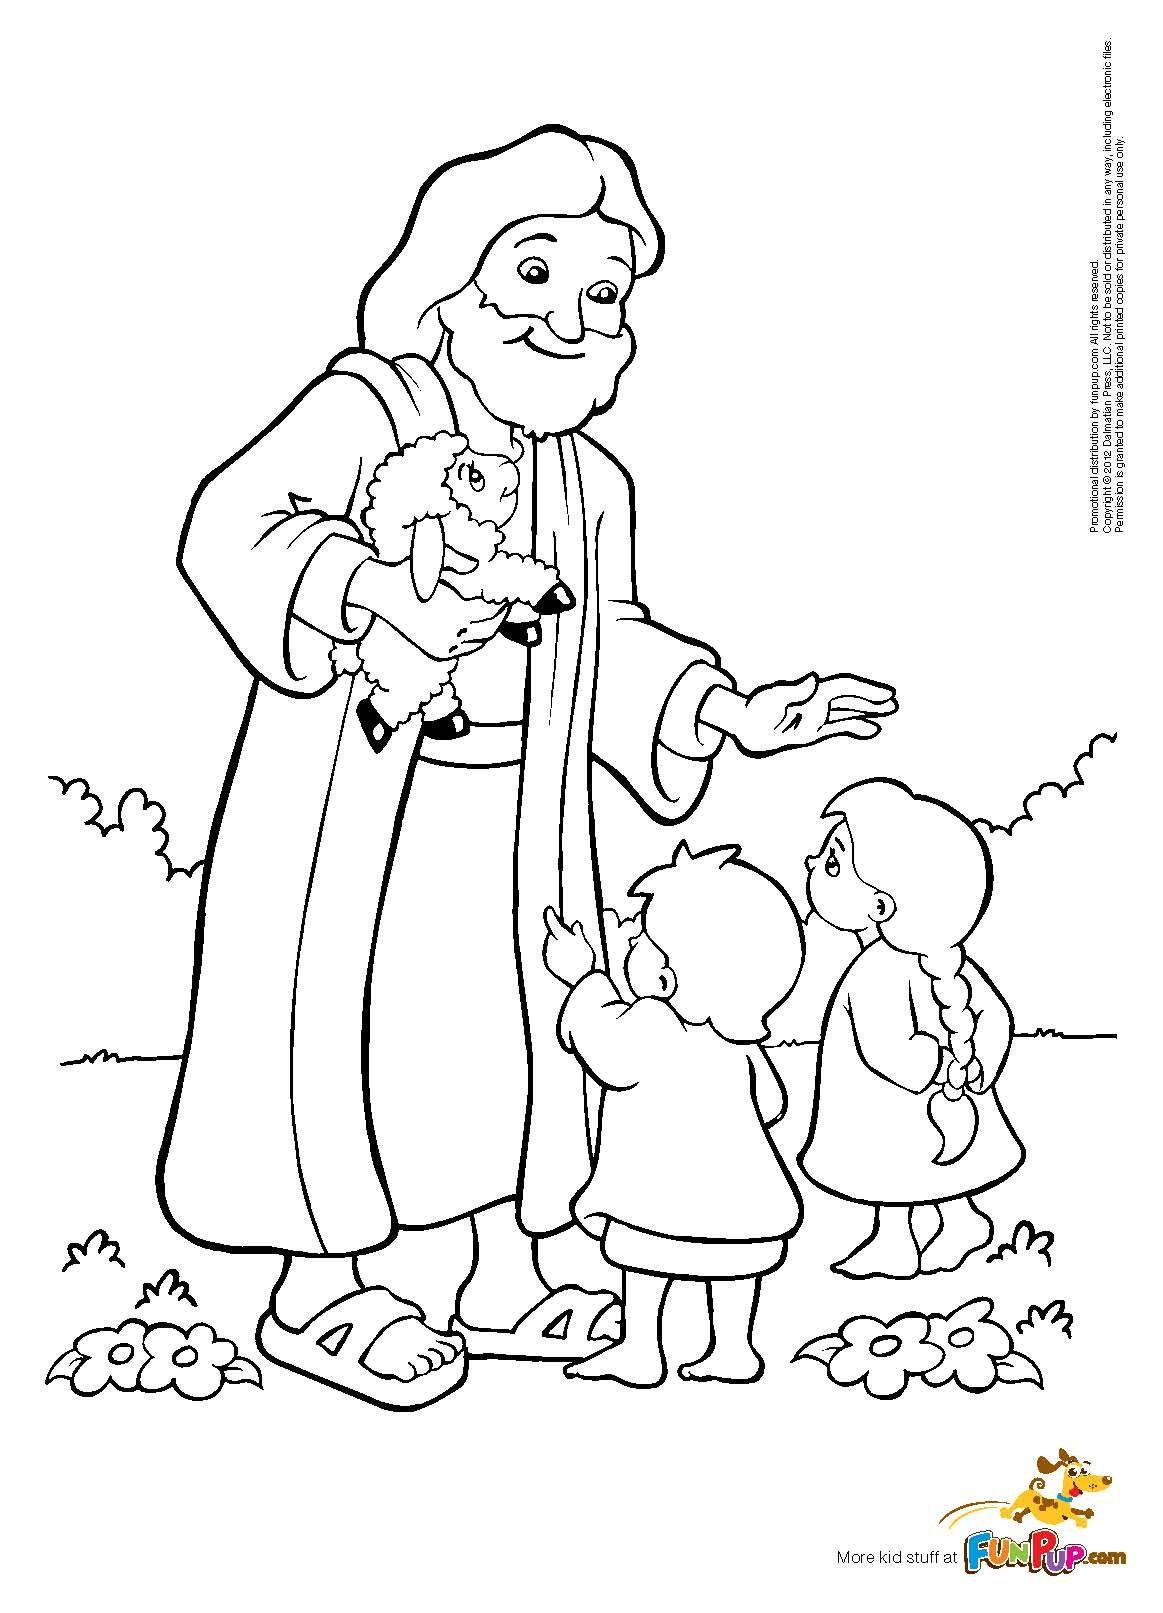 Happy Birthday Jesus Coloring Pages Free Online Printable Sheets For Kids Get The Latest Images